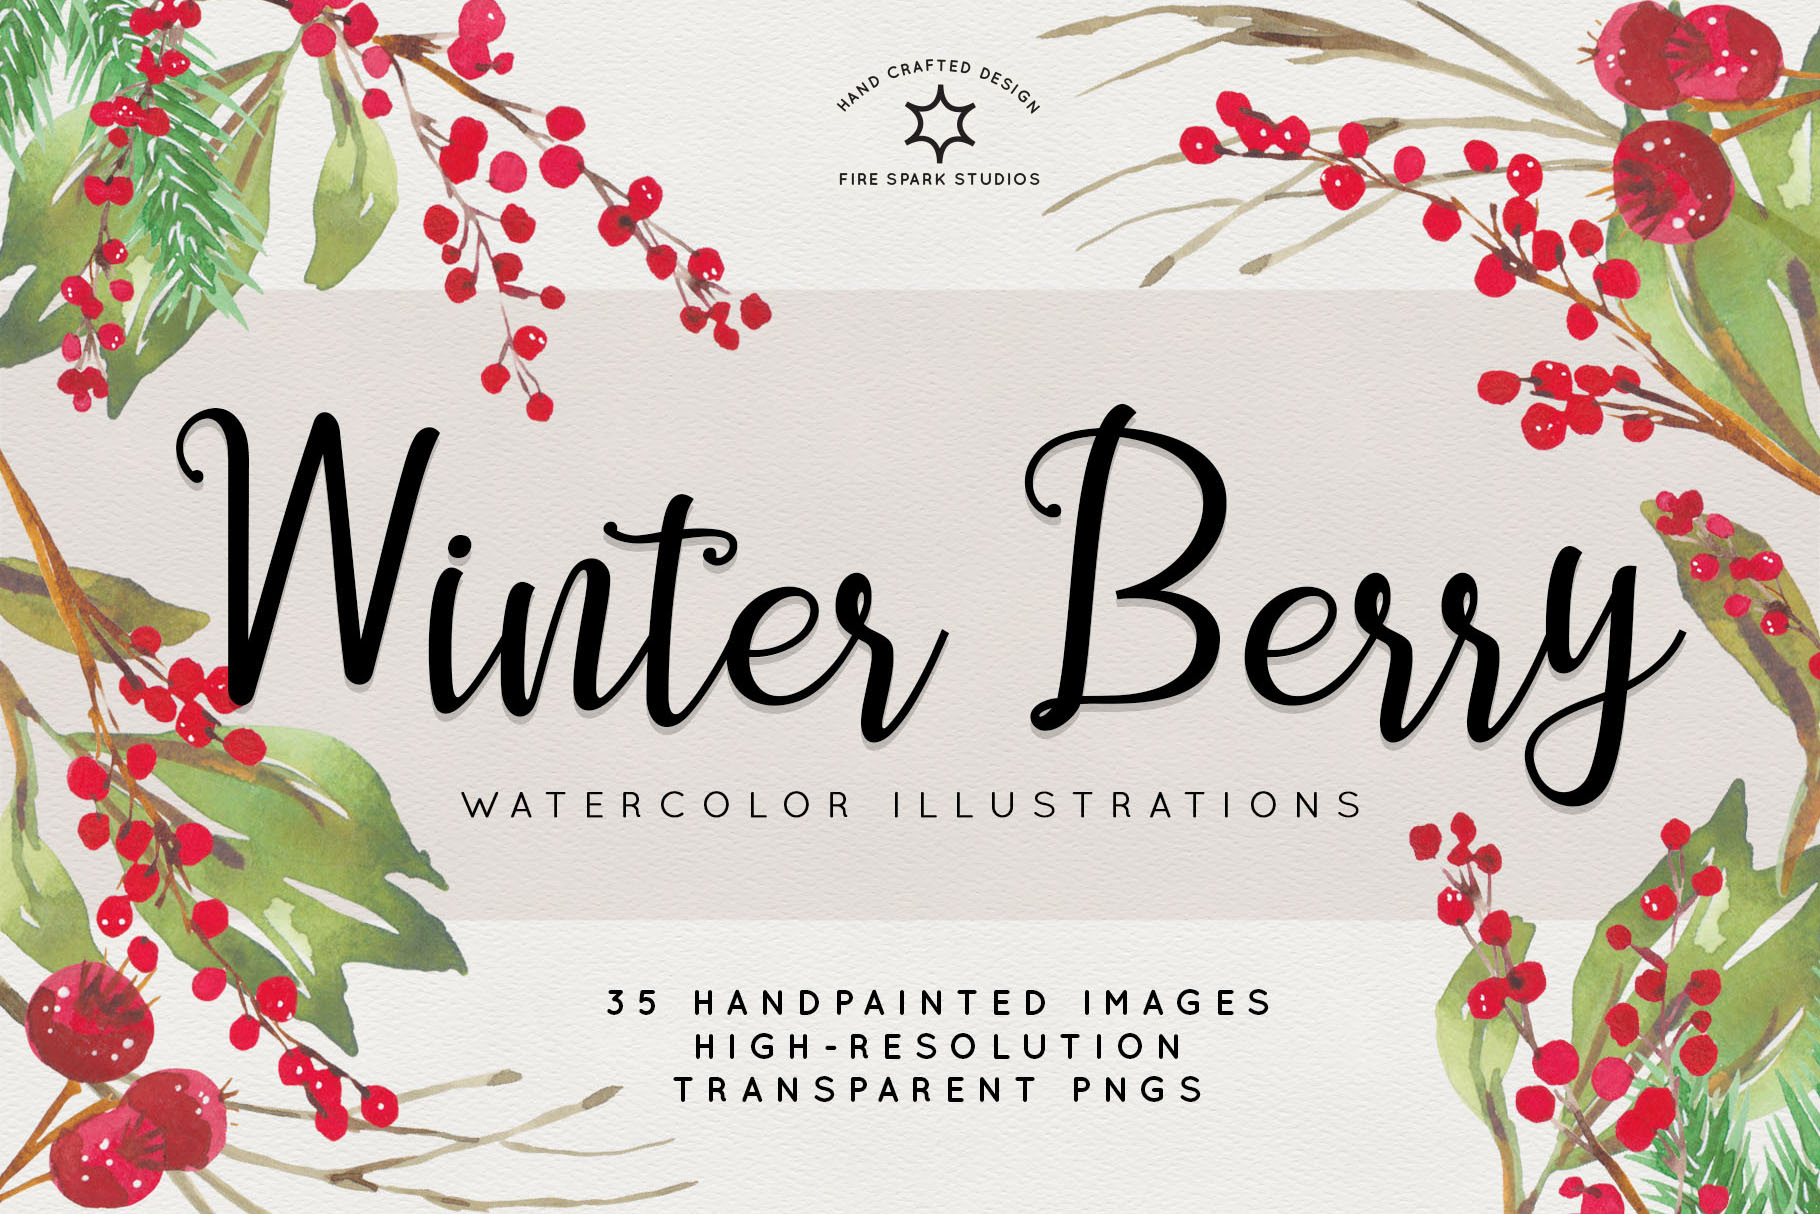 Winter Berry Watercolor Illustrations.